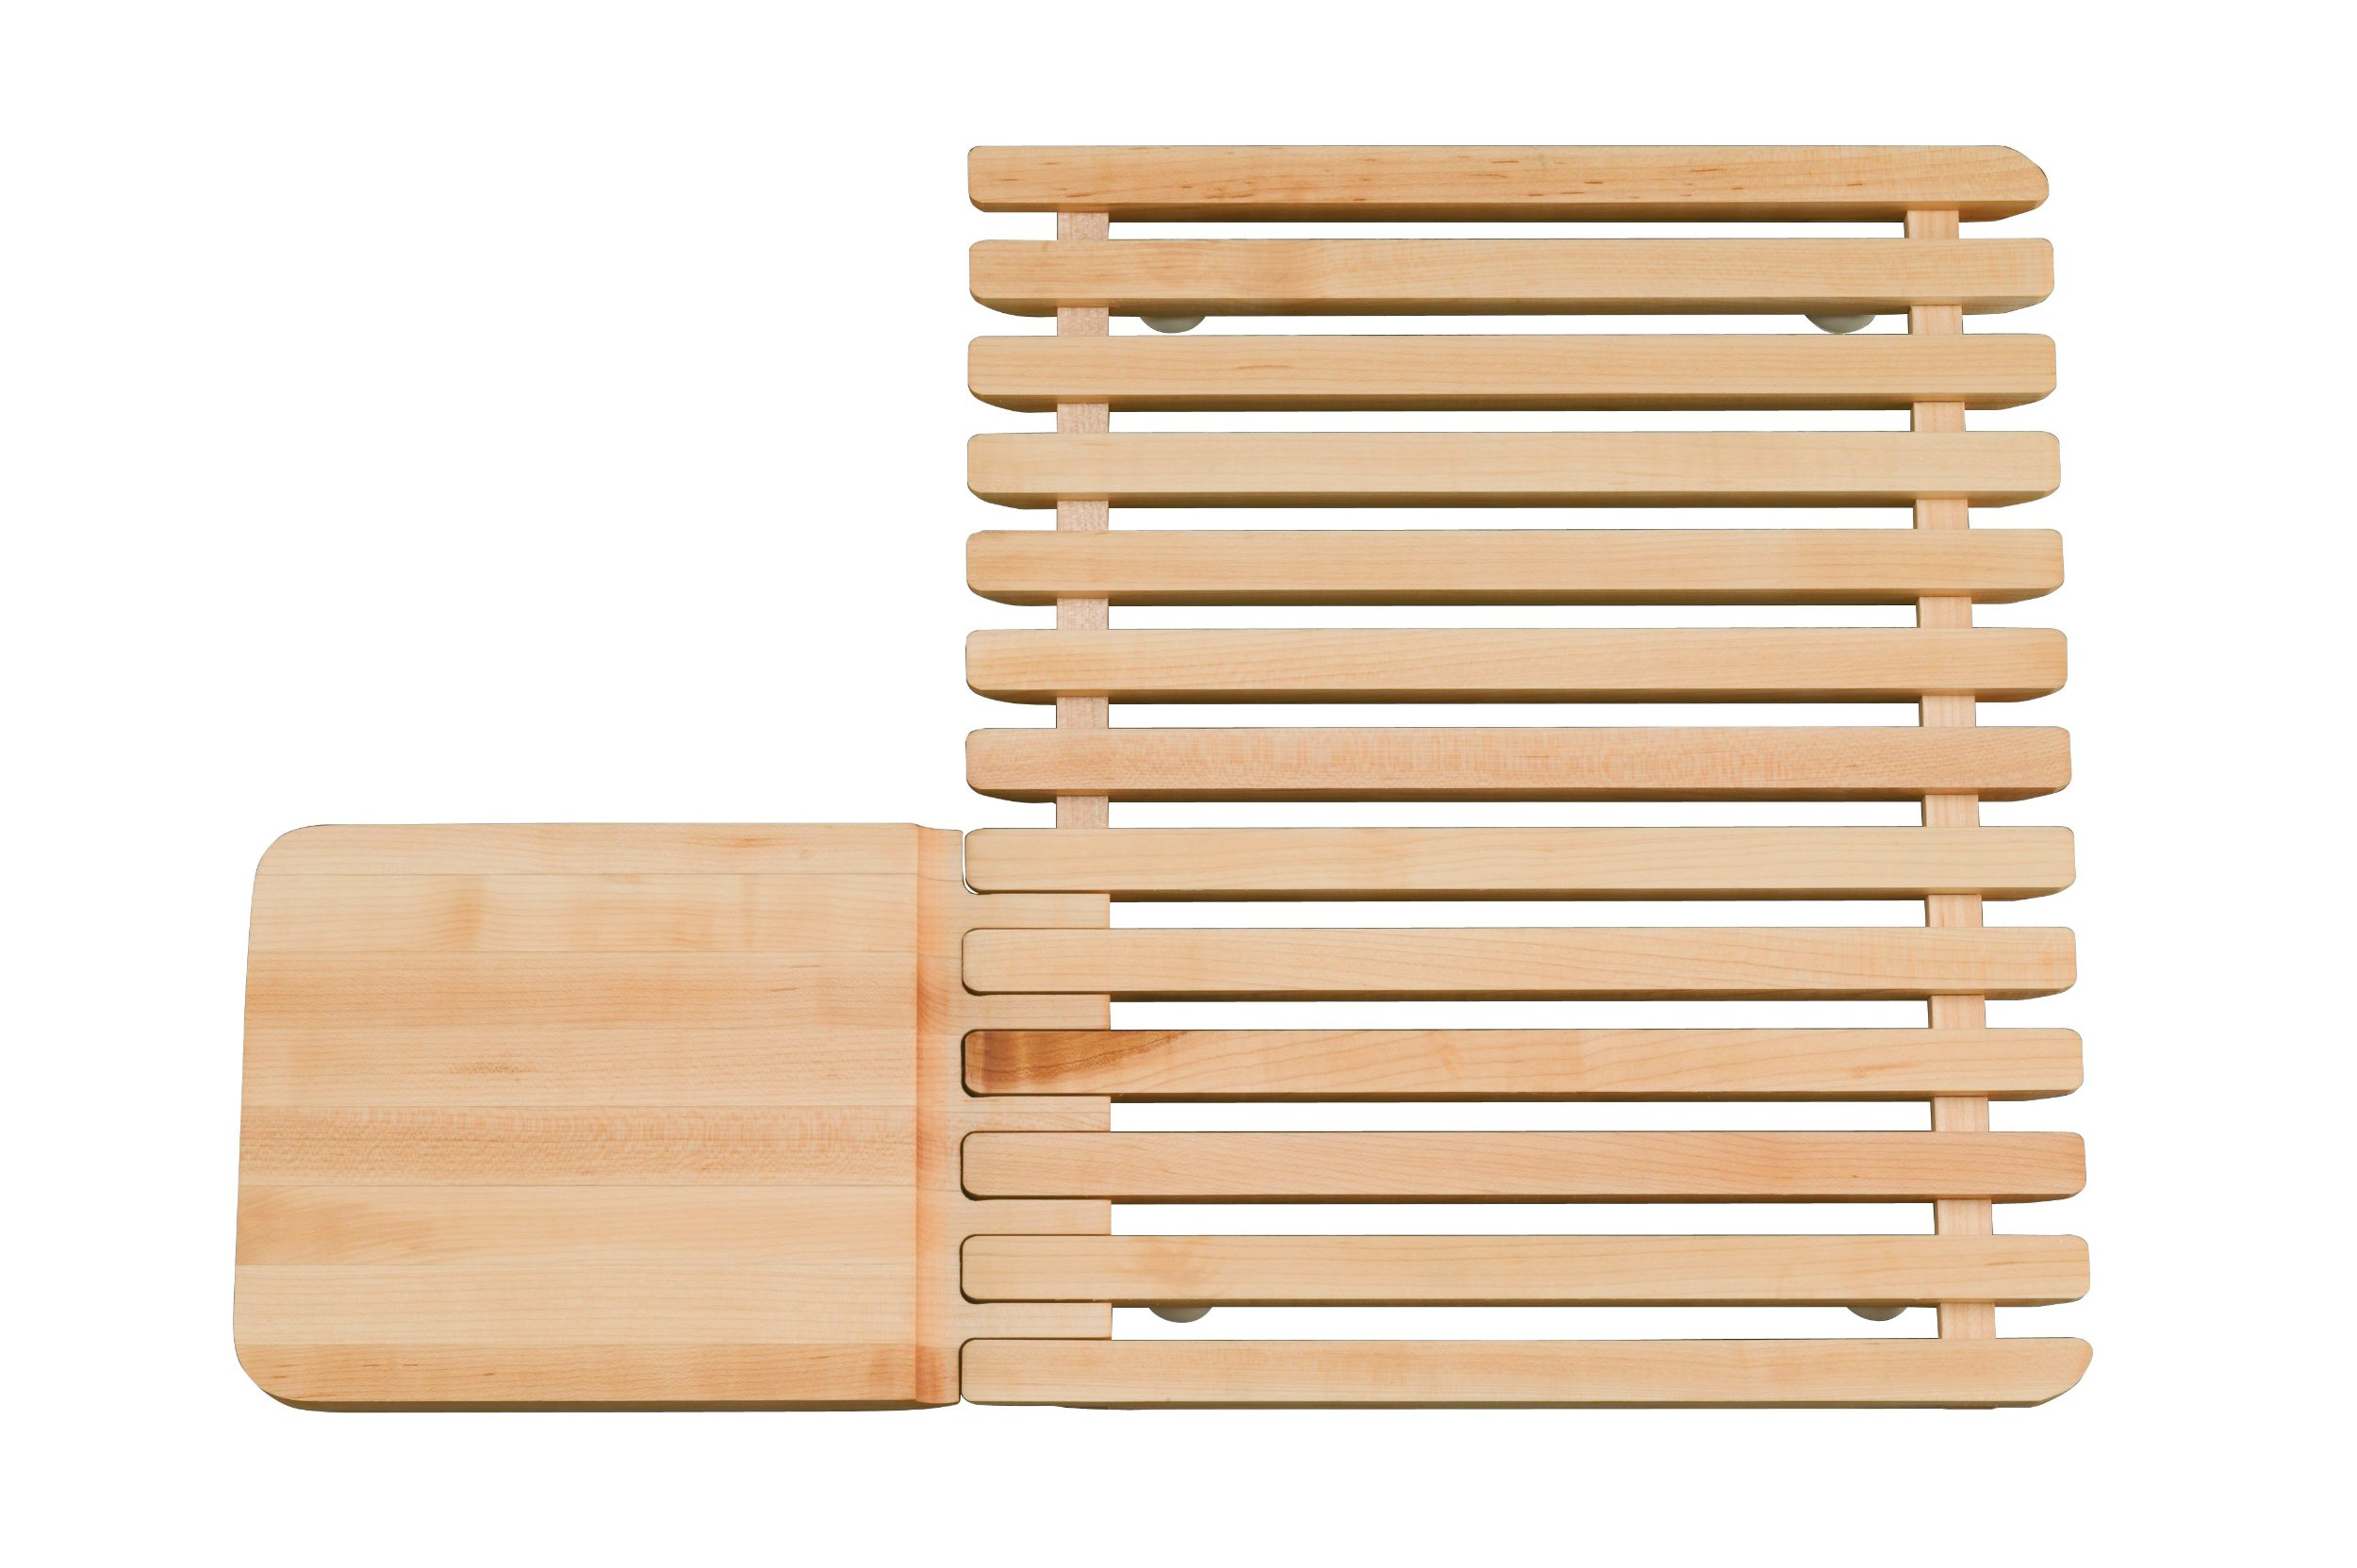 KOHLER K-5907-NA Epicurean Cutting Board